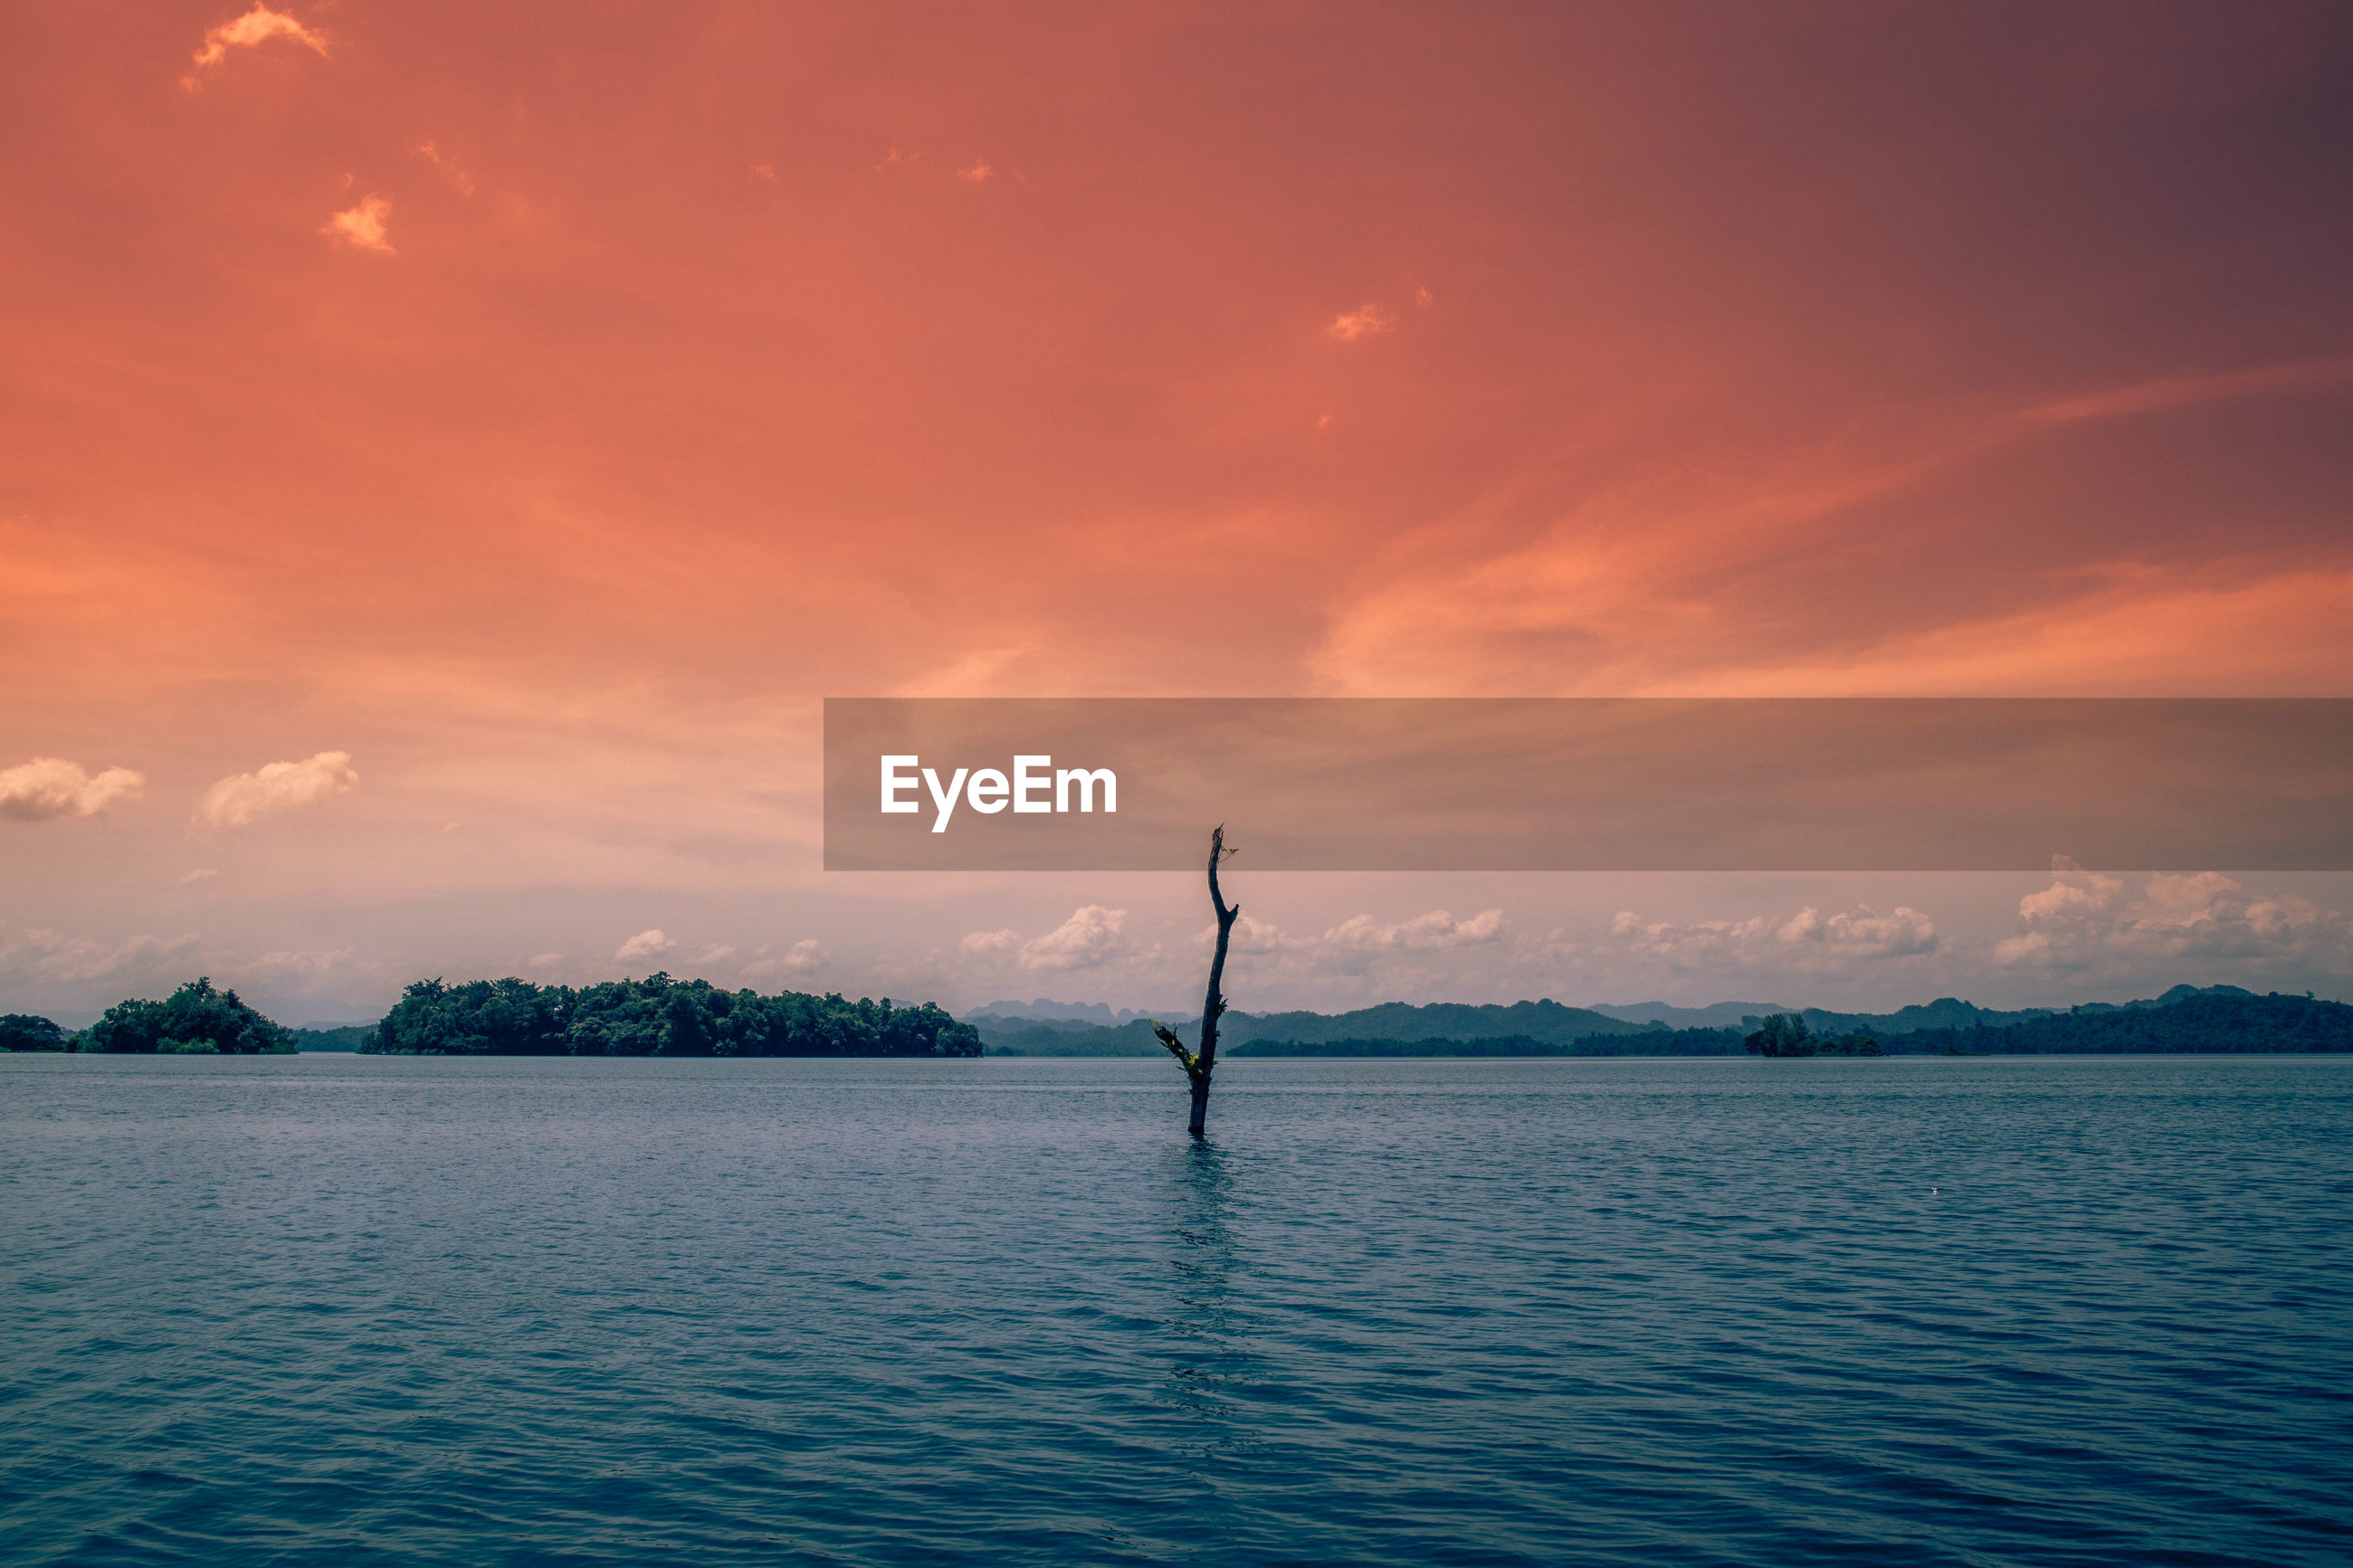 Bare tree in lake against dramatic sky